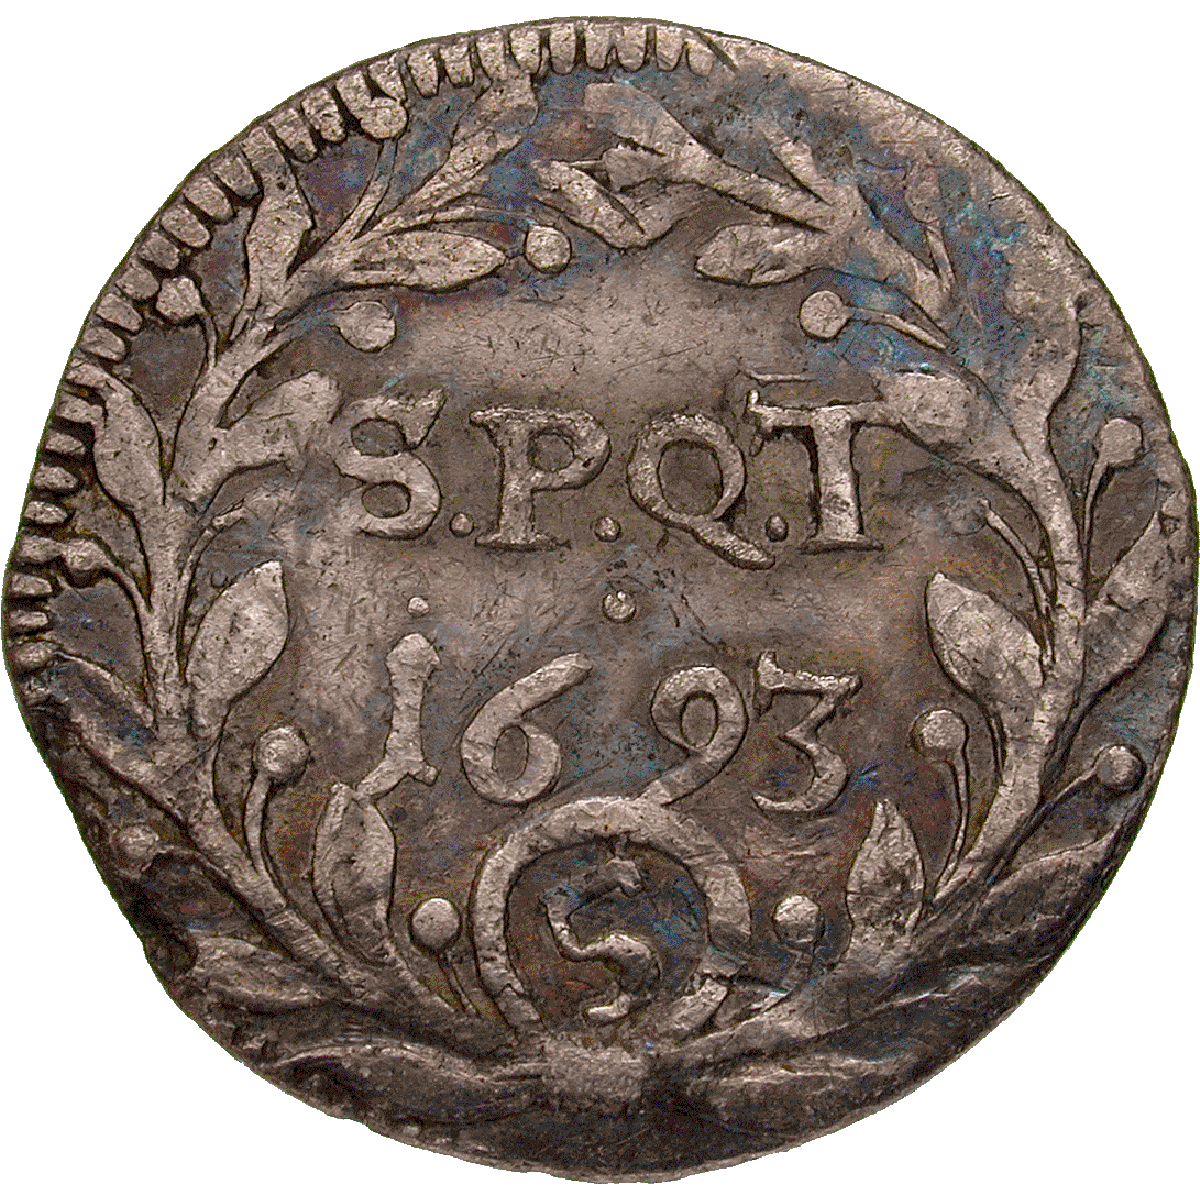 Republic of Zurich, 5 Schillings 1693 (reverse)